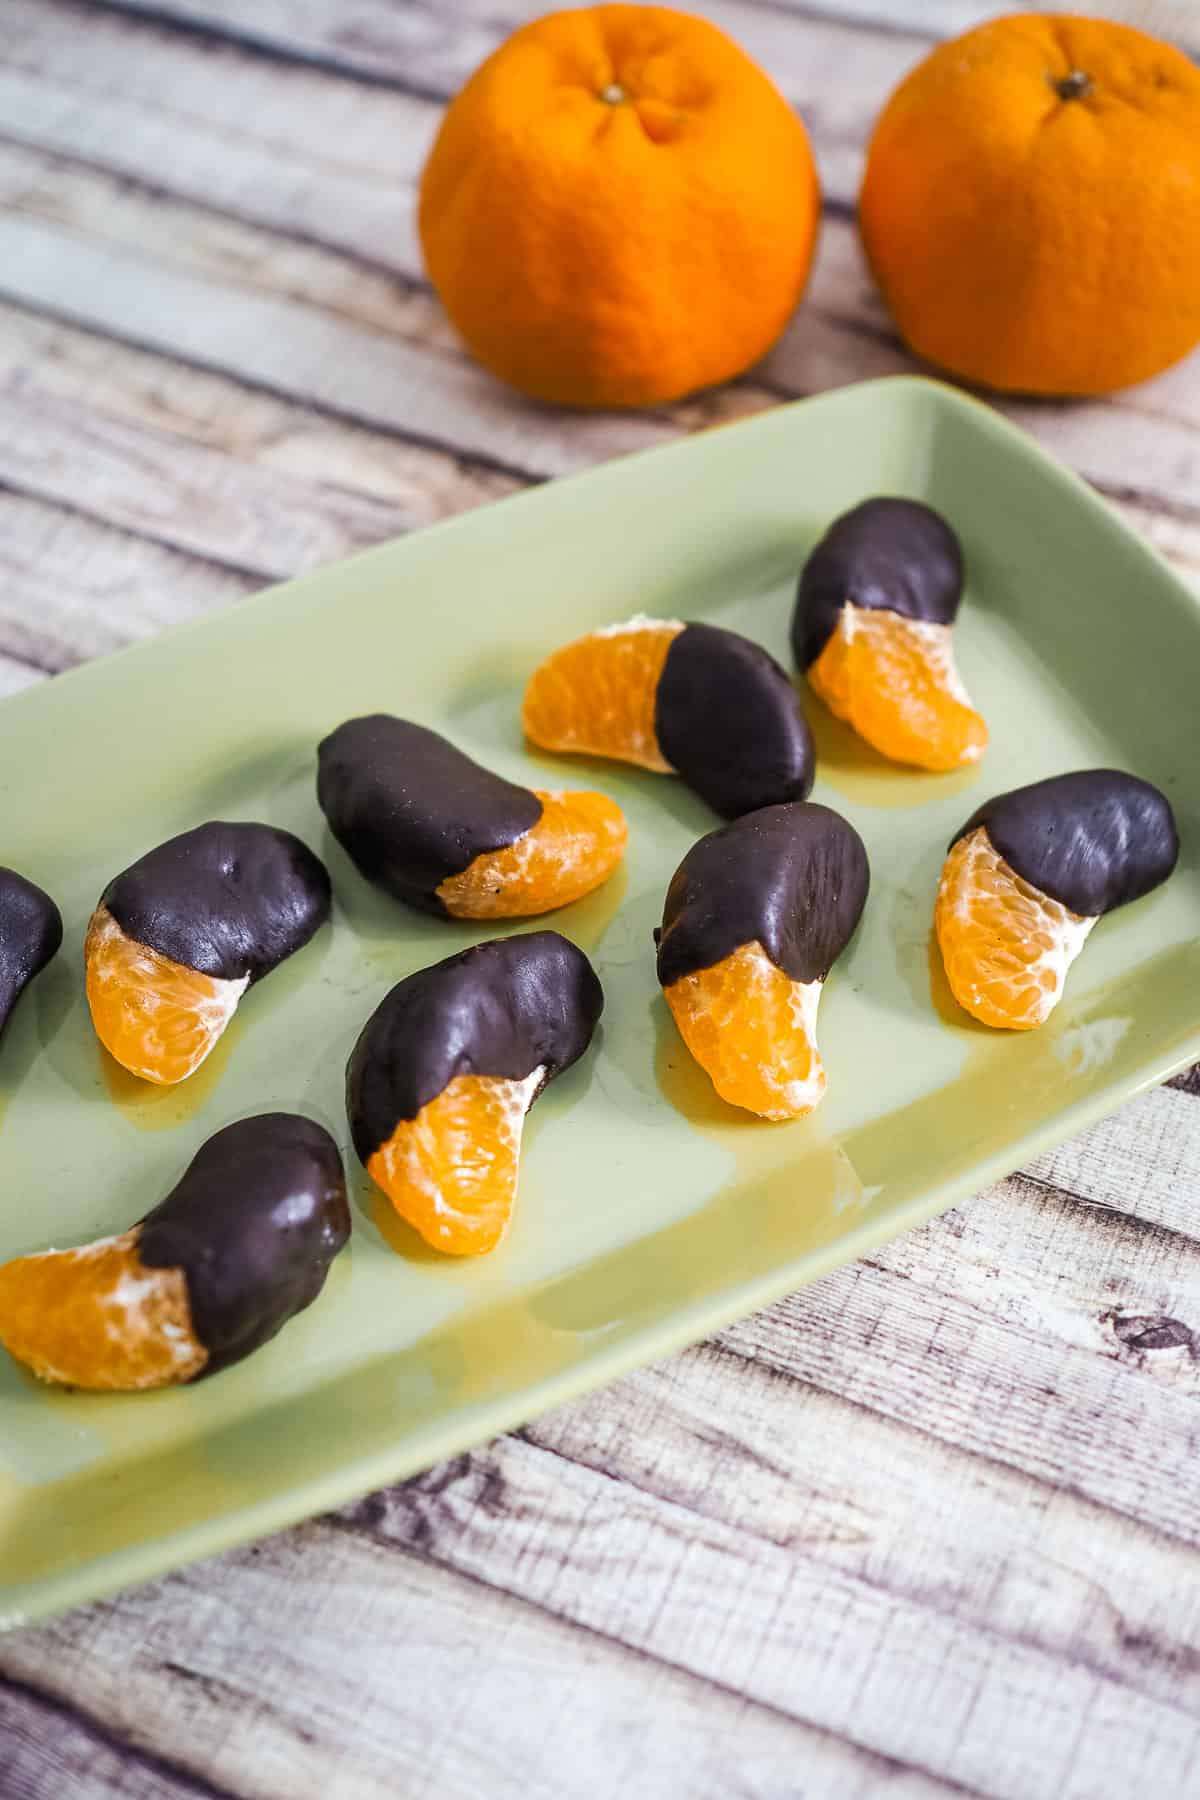 Chocolate dipped orange segments on a green rectangle plate against a white wood background